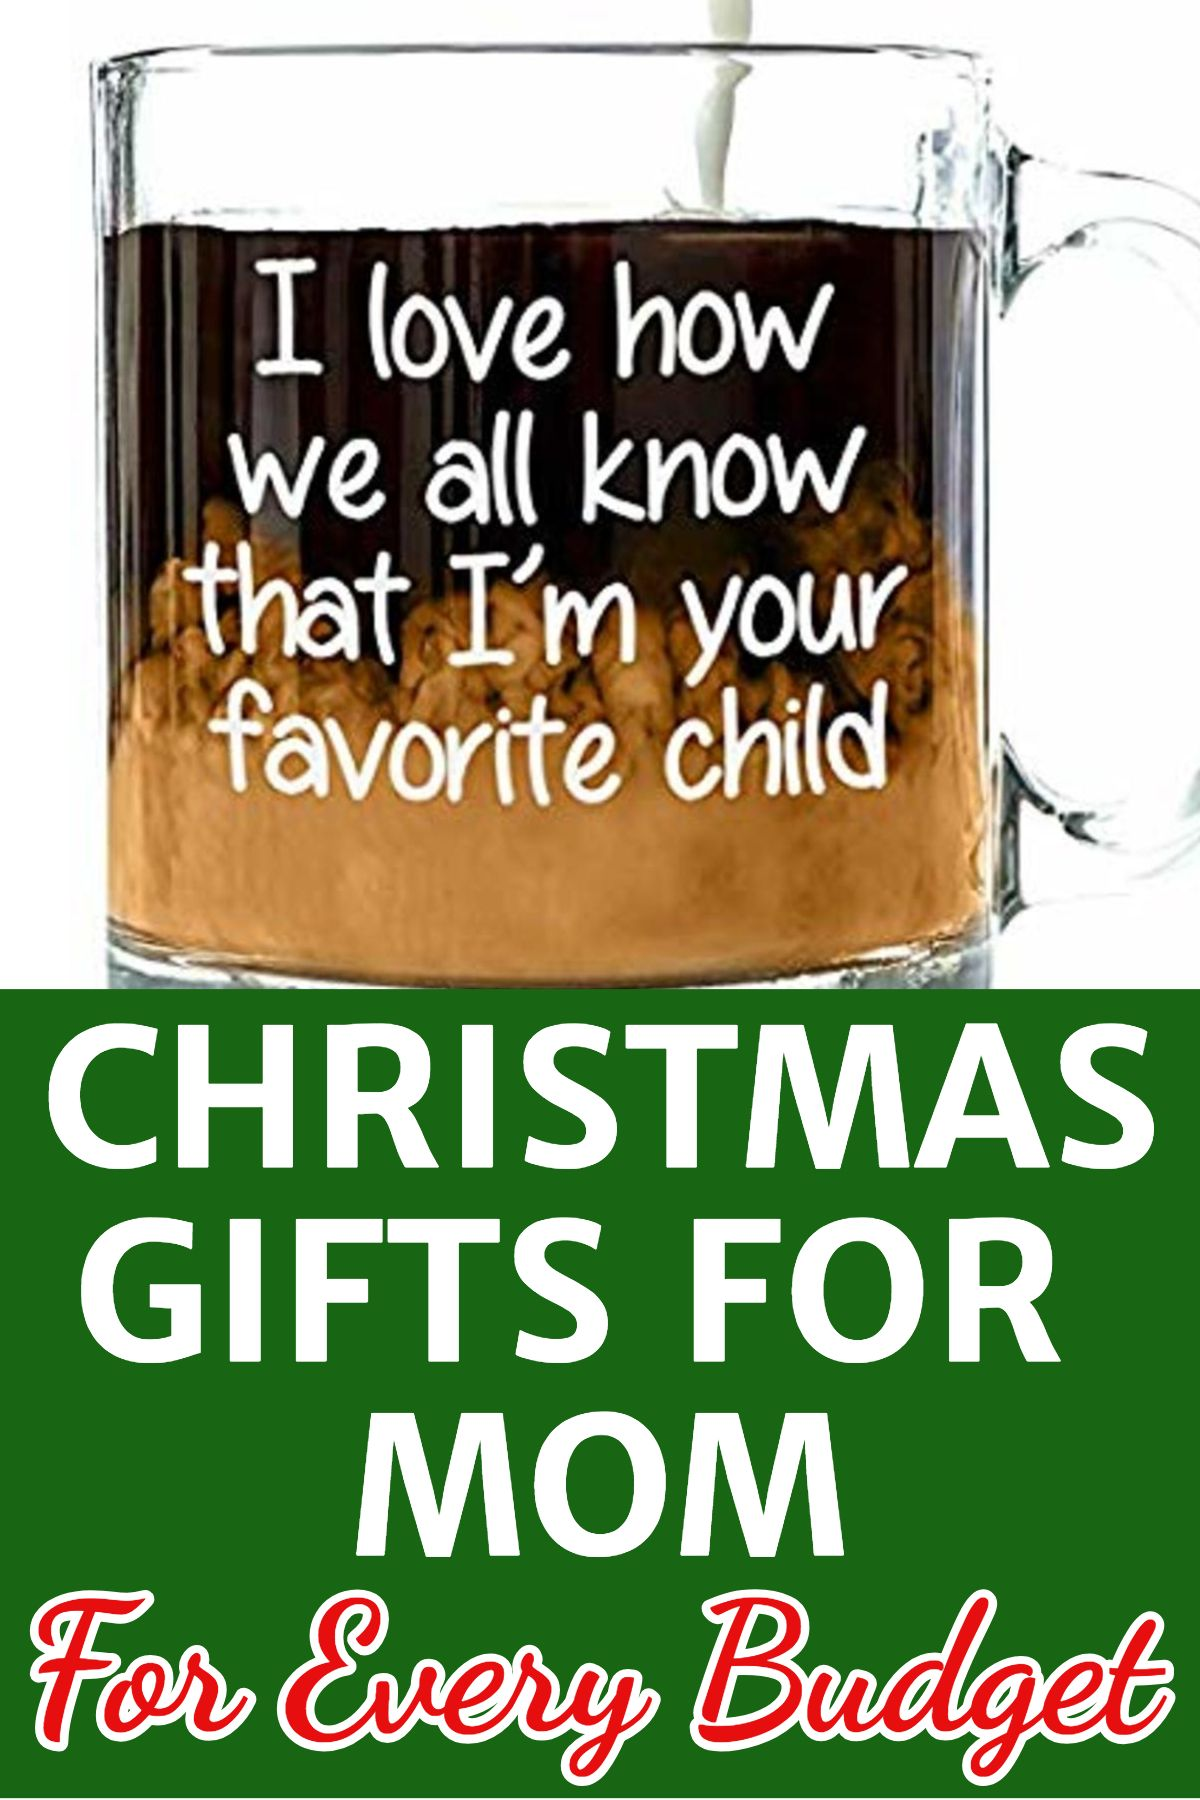 Christmas Gifts For Mom Looking For Creative And Fun Christmas Gift Ideas For Your Mother Click Special Gifts For Mom Christmas Gifts For Mom Gifts For Mom